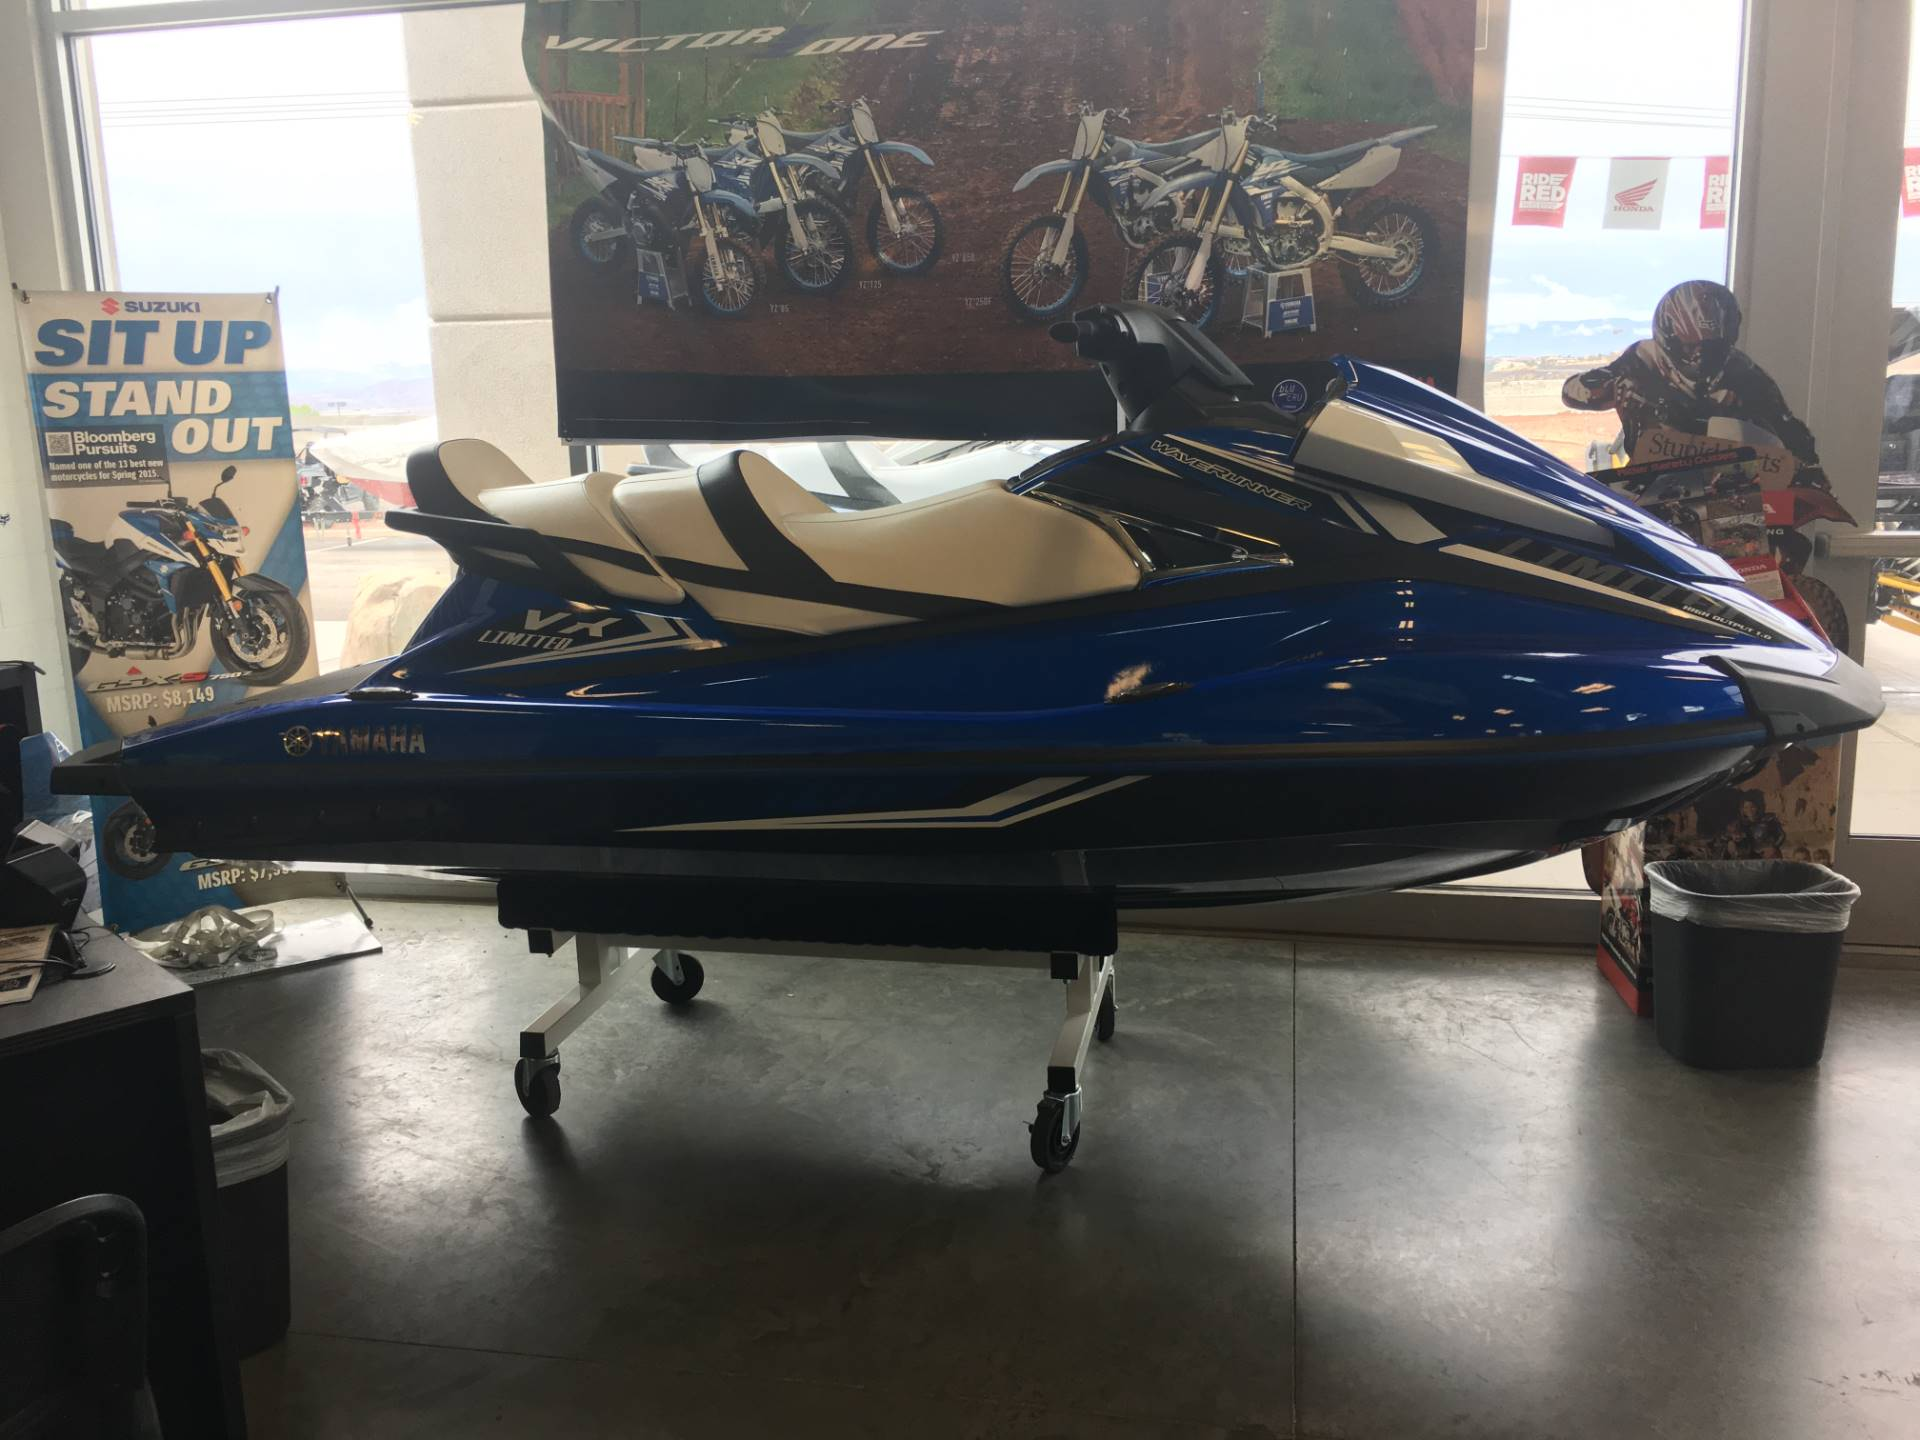 2017 Yamaha VX Limited for sale 9653